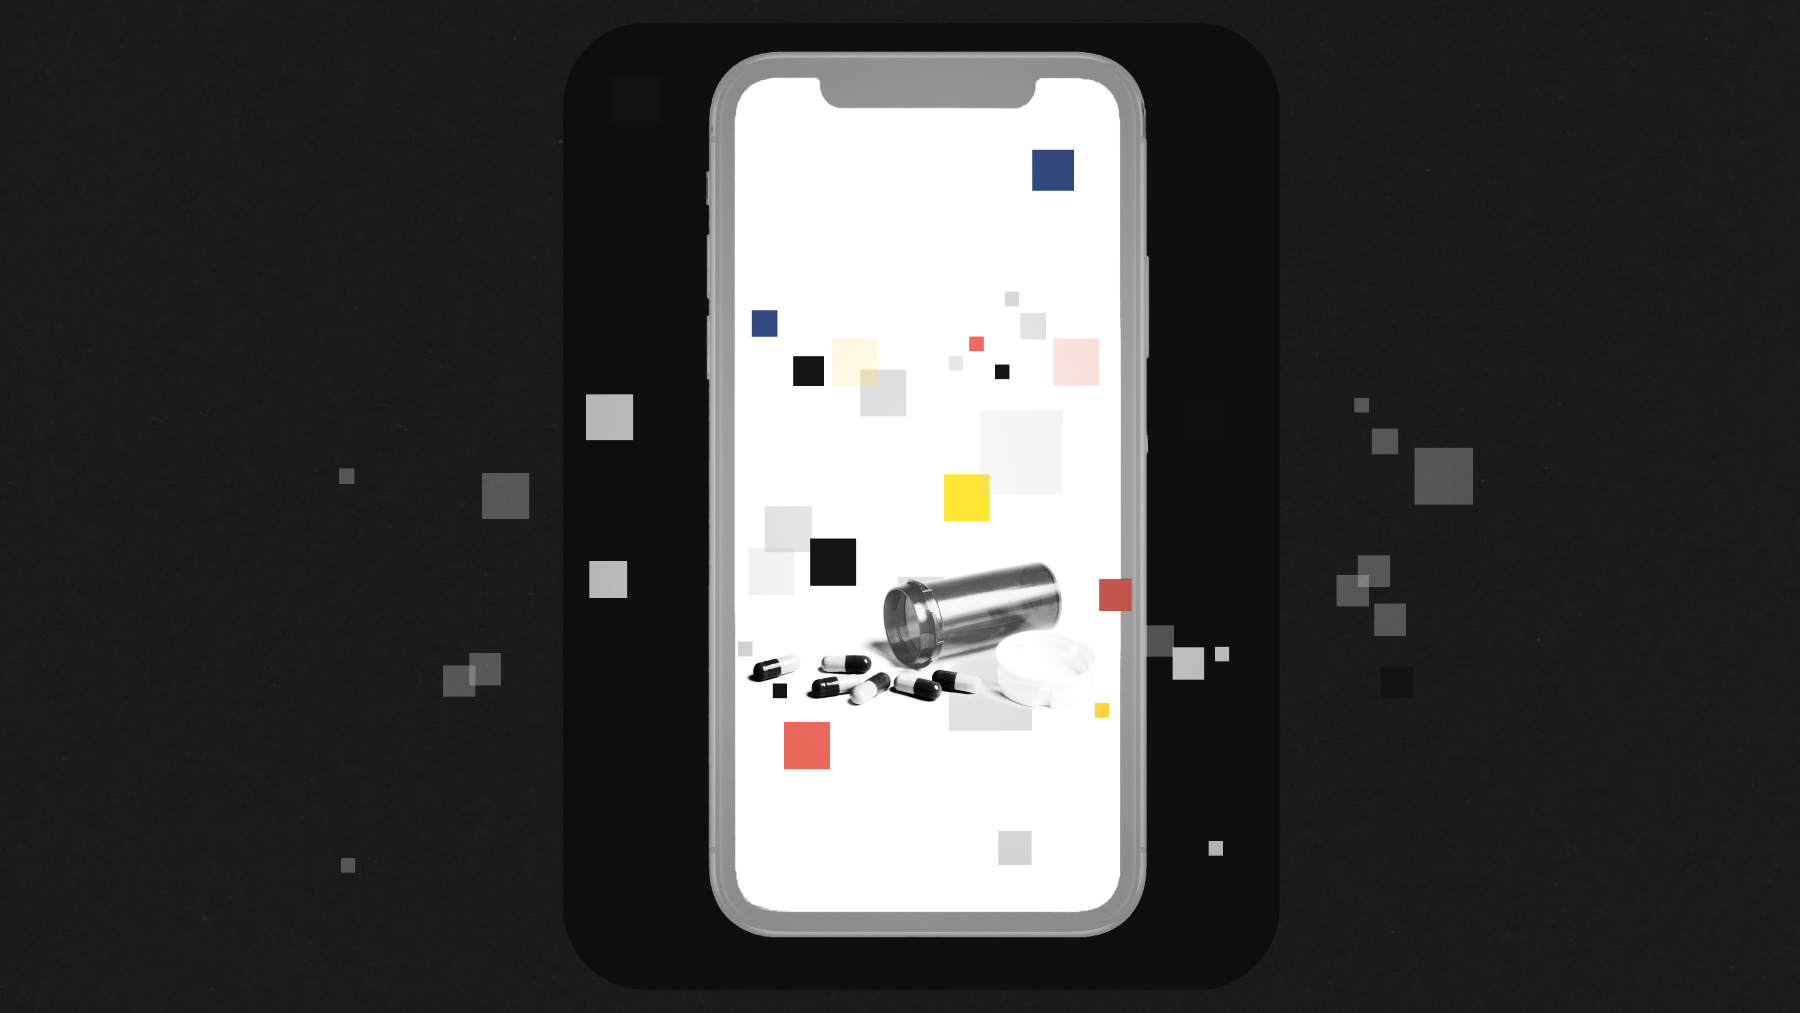 Photo illustration of a phone screen with a picture of a spilled pill bottle on it.